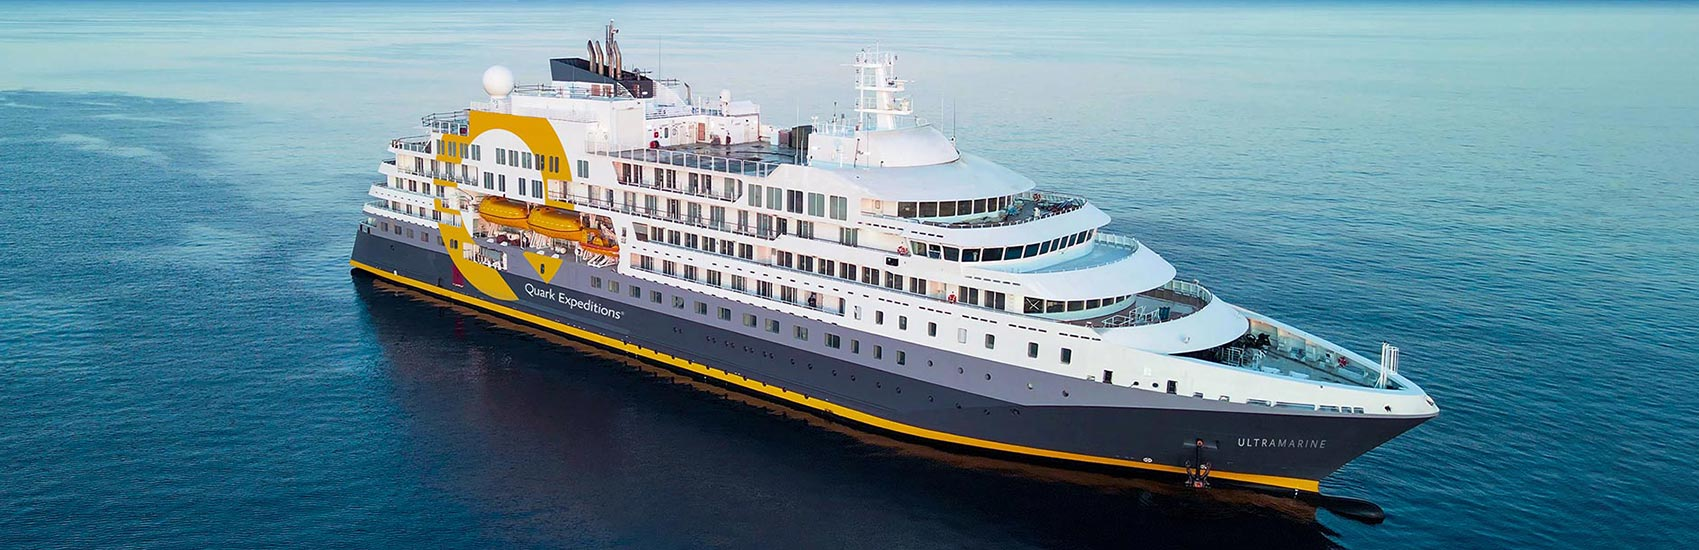 Arctic 2023 Early Booking Savings with Quark Expeditions 2